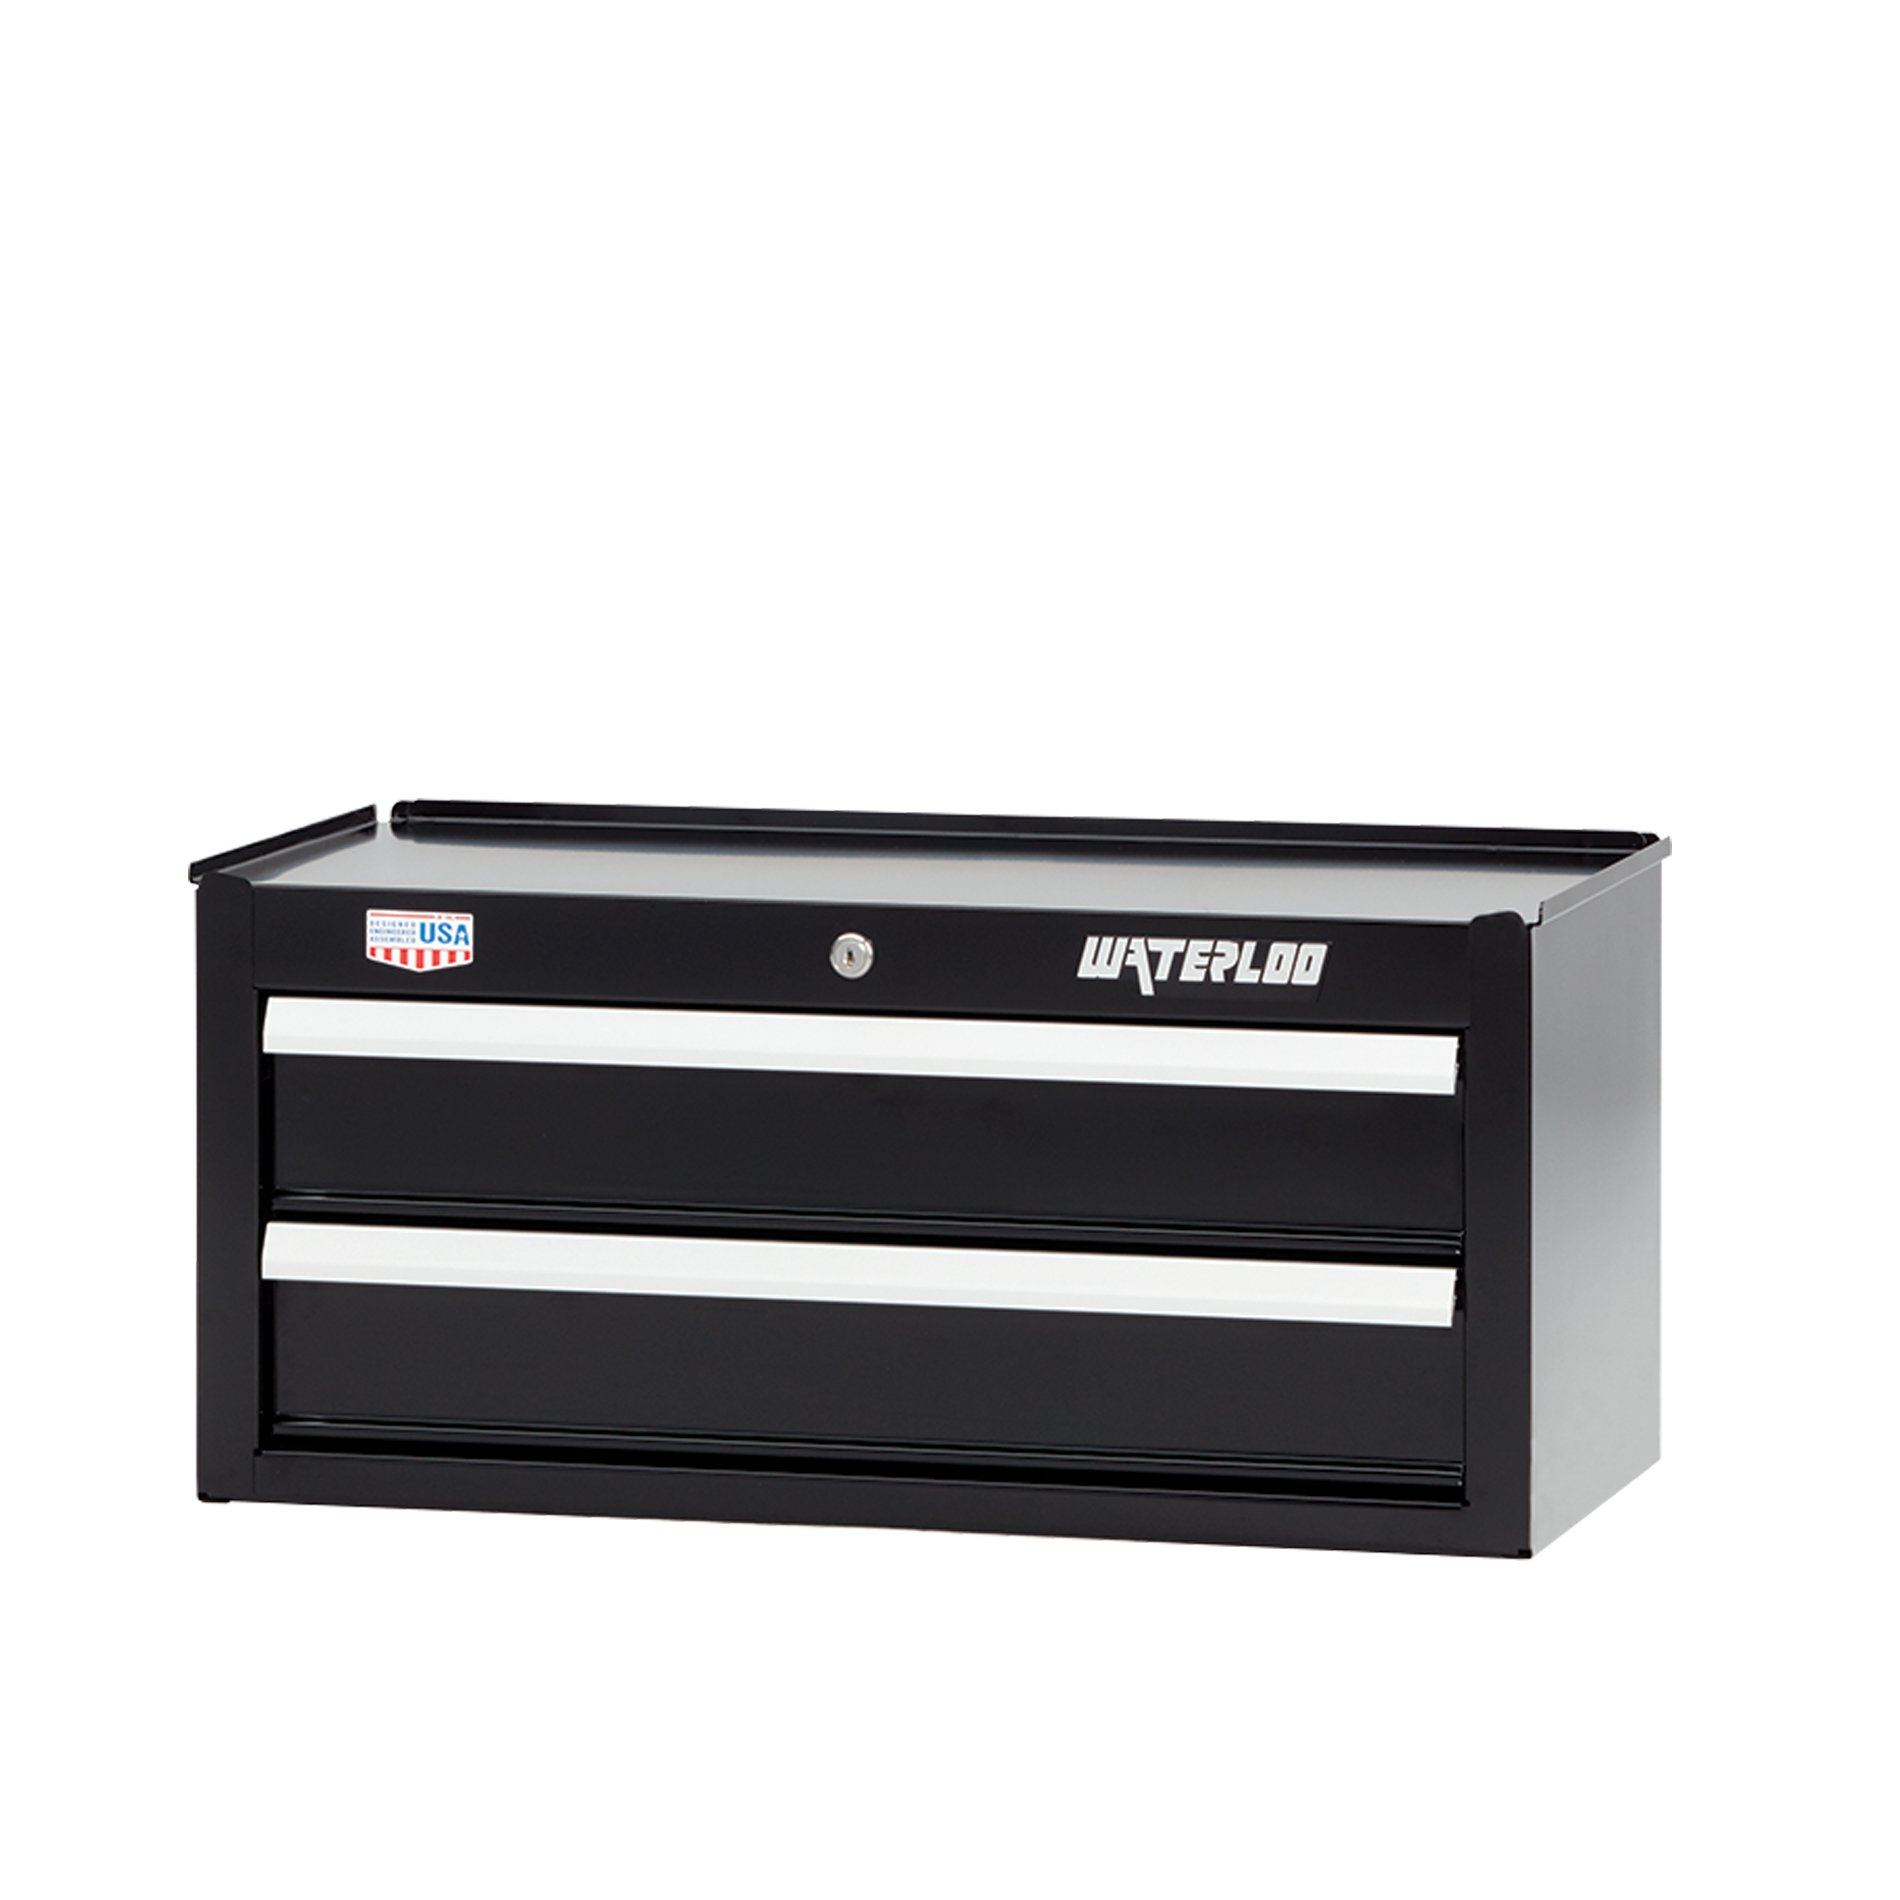 Waterloo W300 Series 2-Drawer Intermediate Tool Chest, 26'' - Designed, Engineered and Assembled in the USA